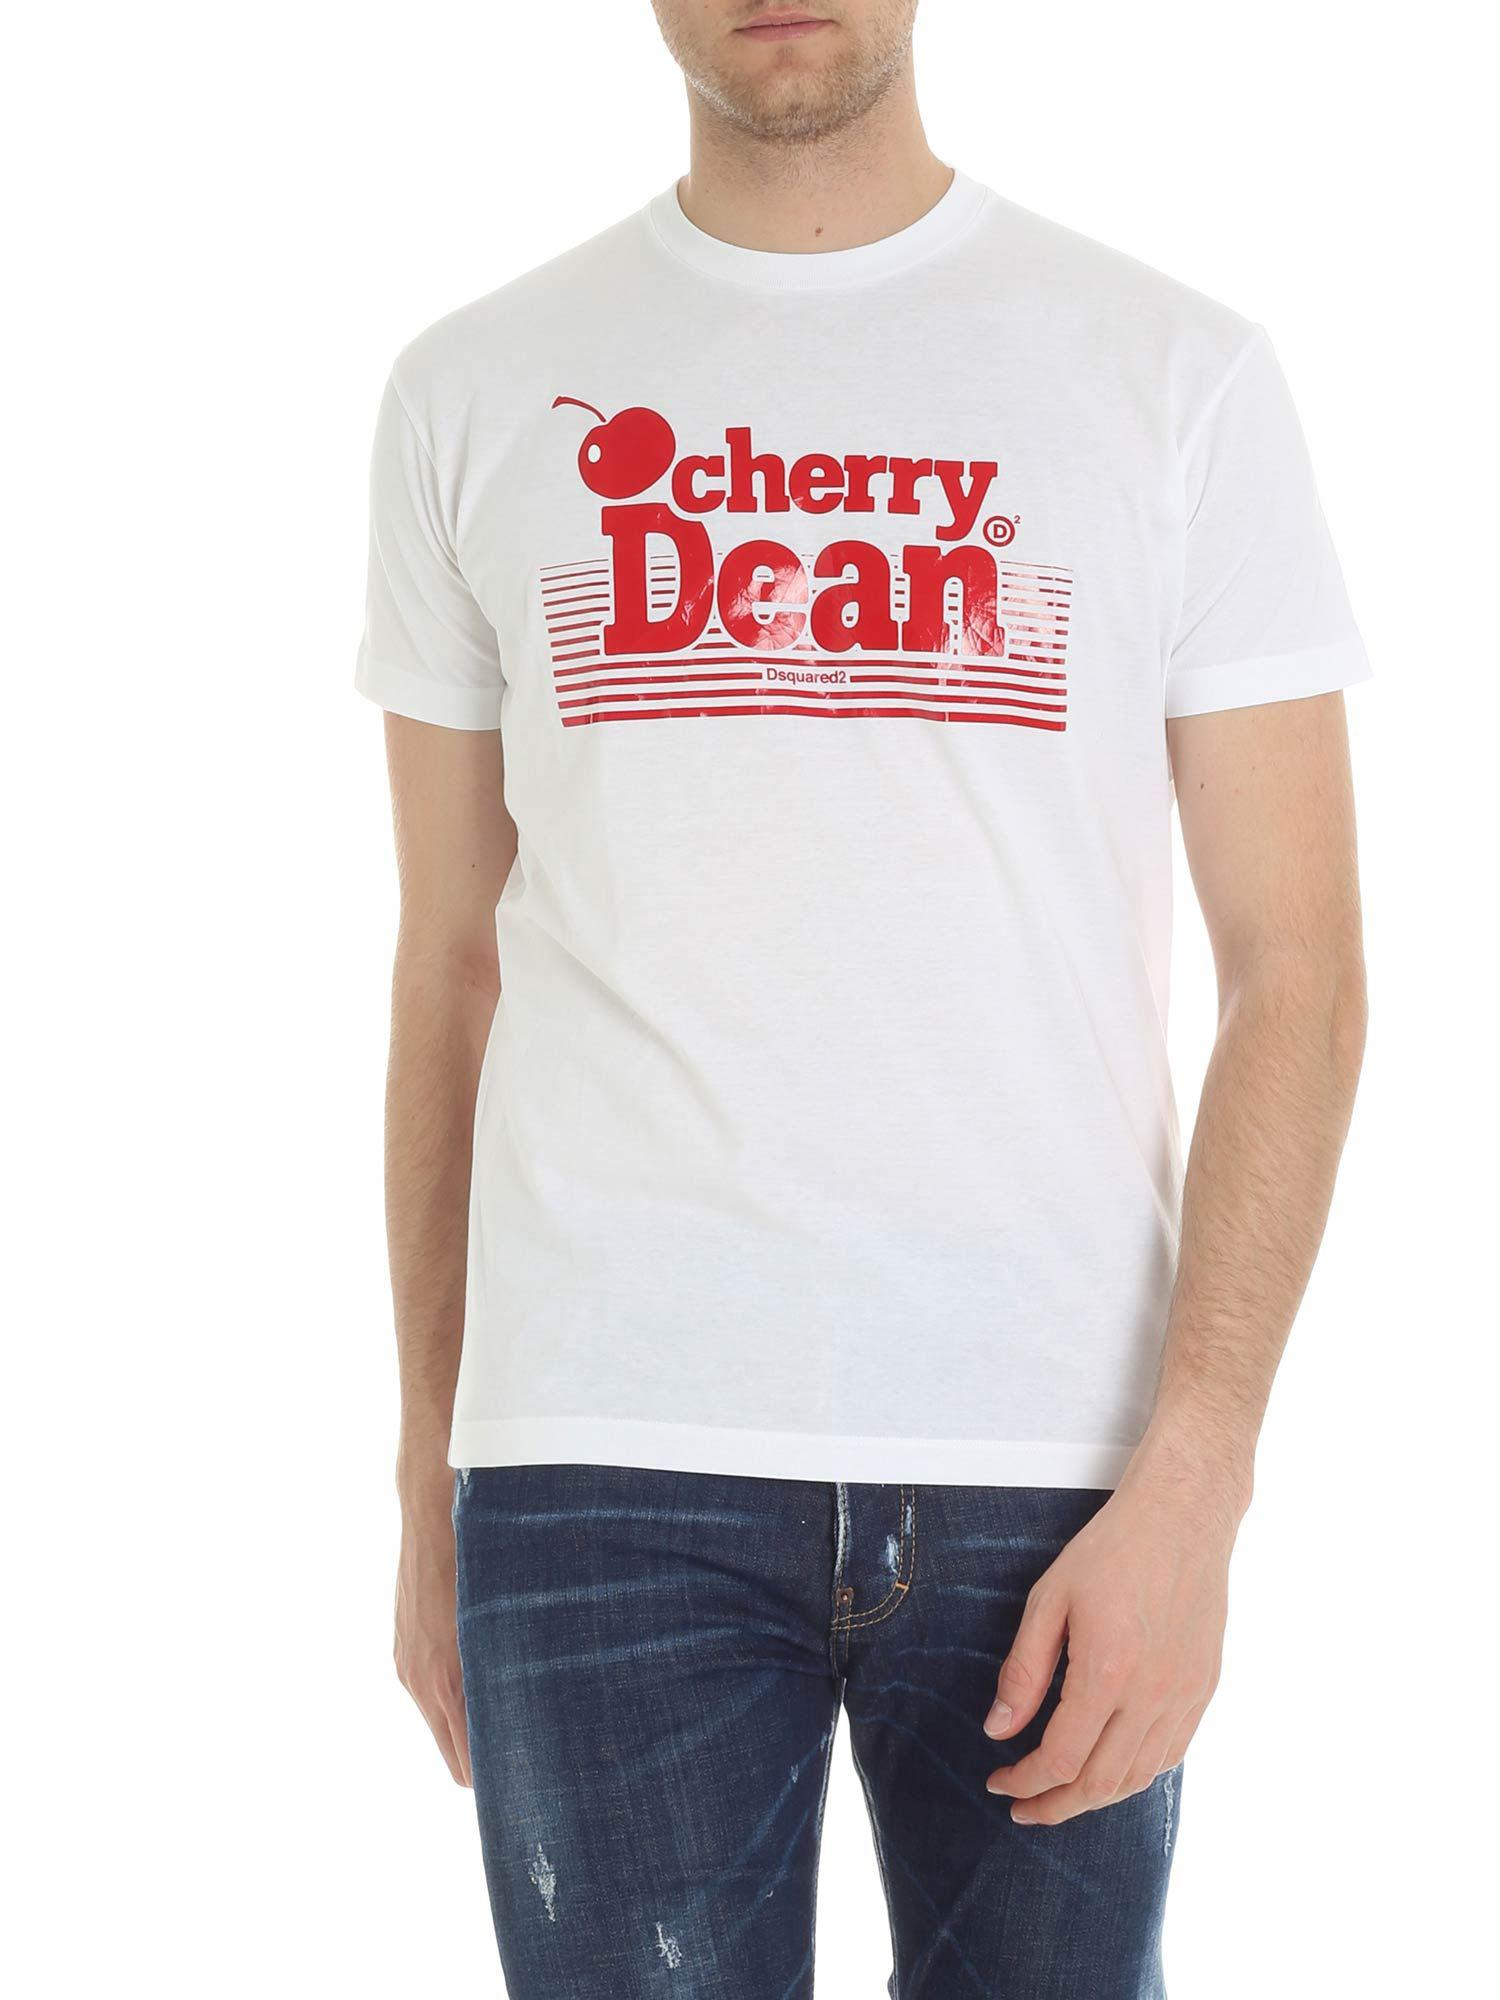 Outlet Best Prices Buy Cheap Nicekicks Cherry Dean printed T-shirt - Grey Dsquared2 Footlocker Pictures Sale Online XSZbJ3